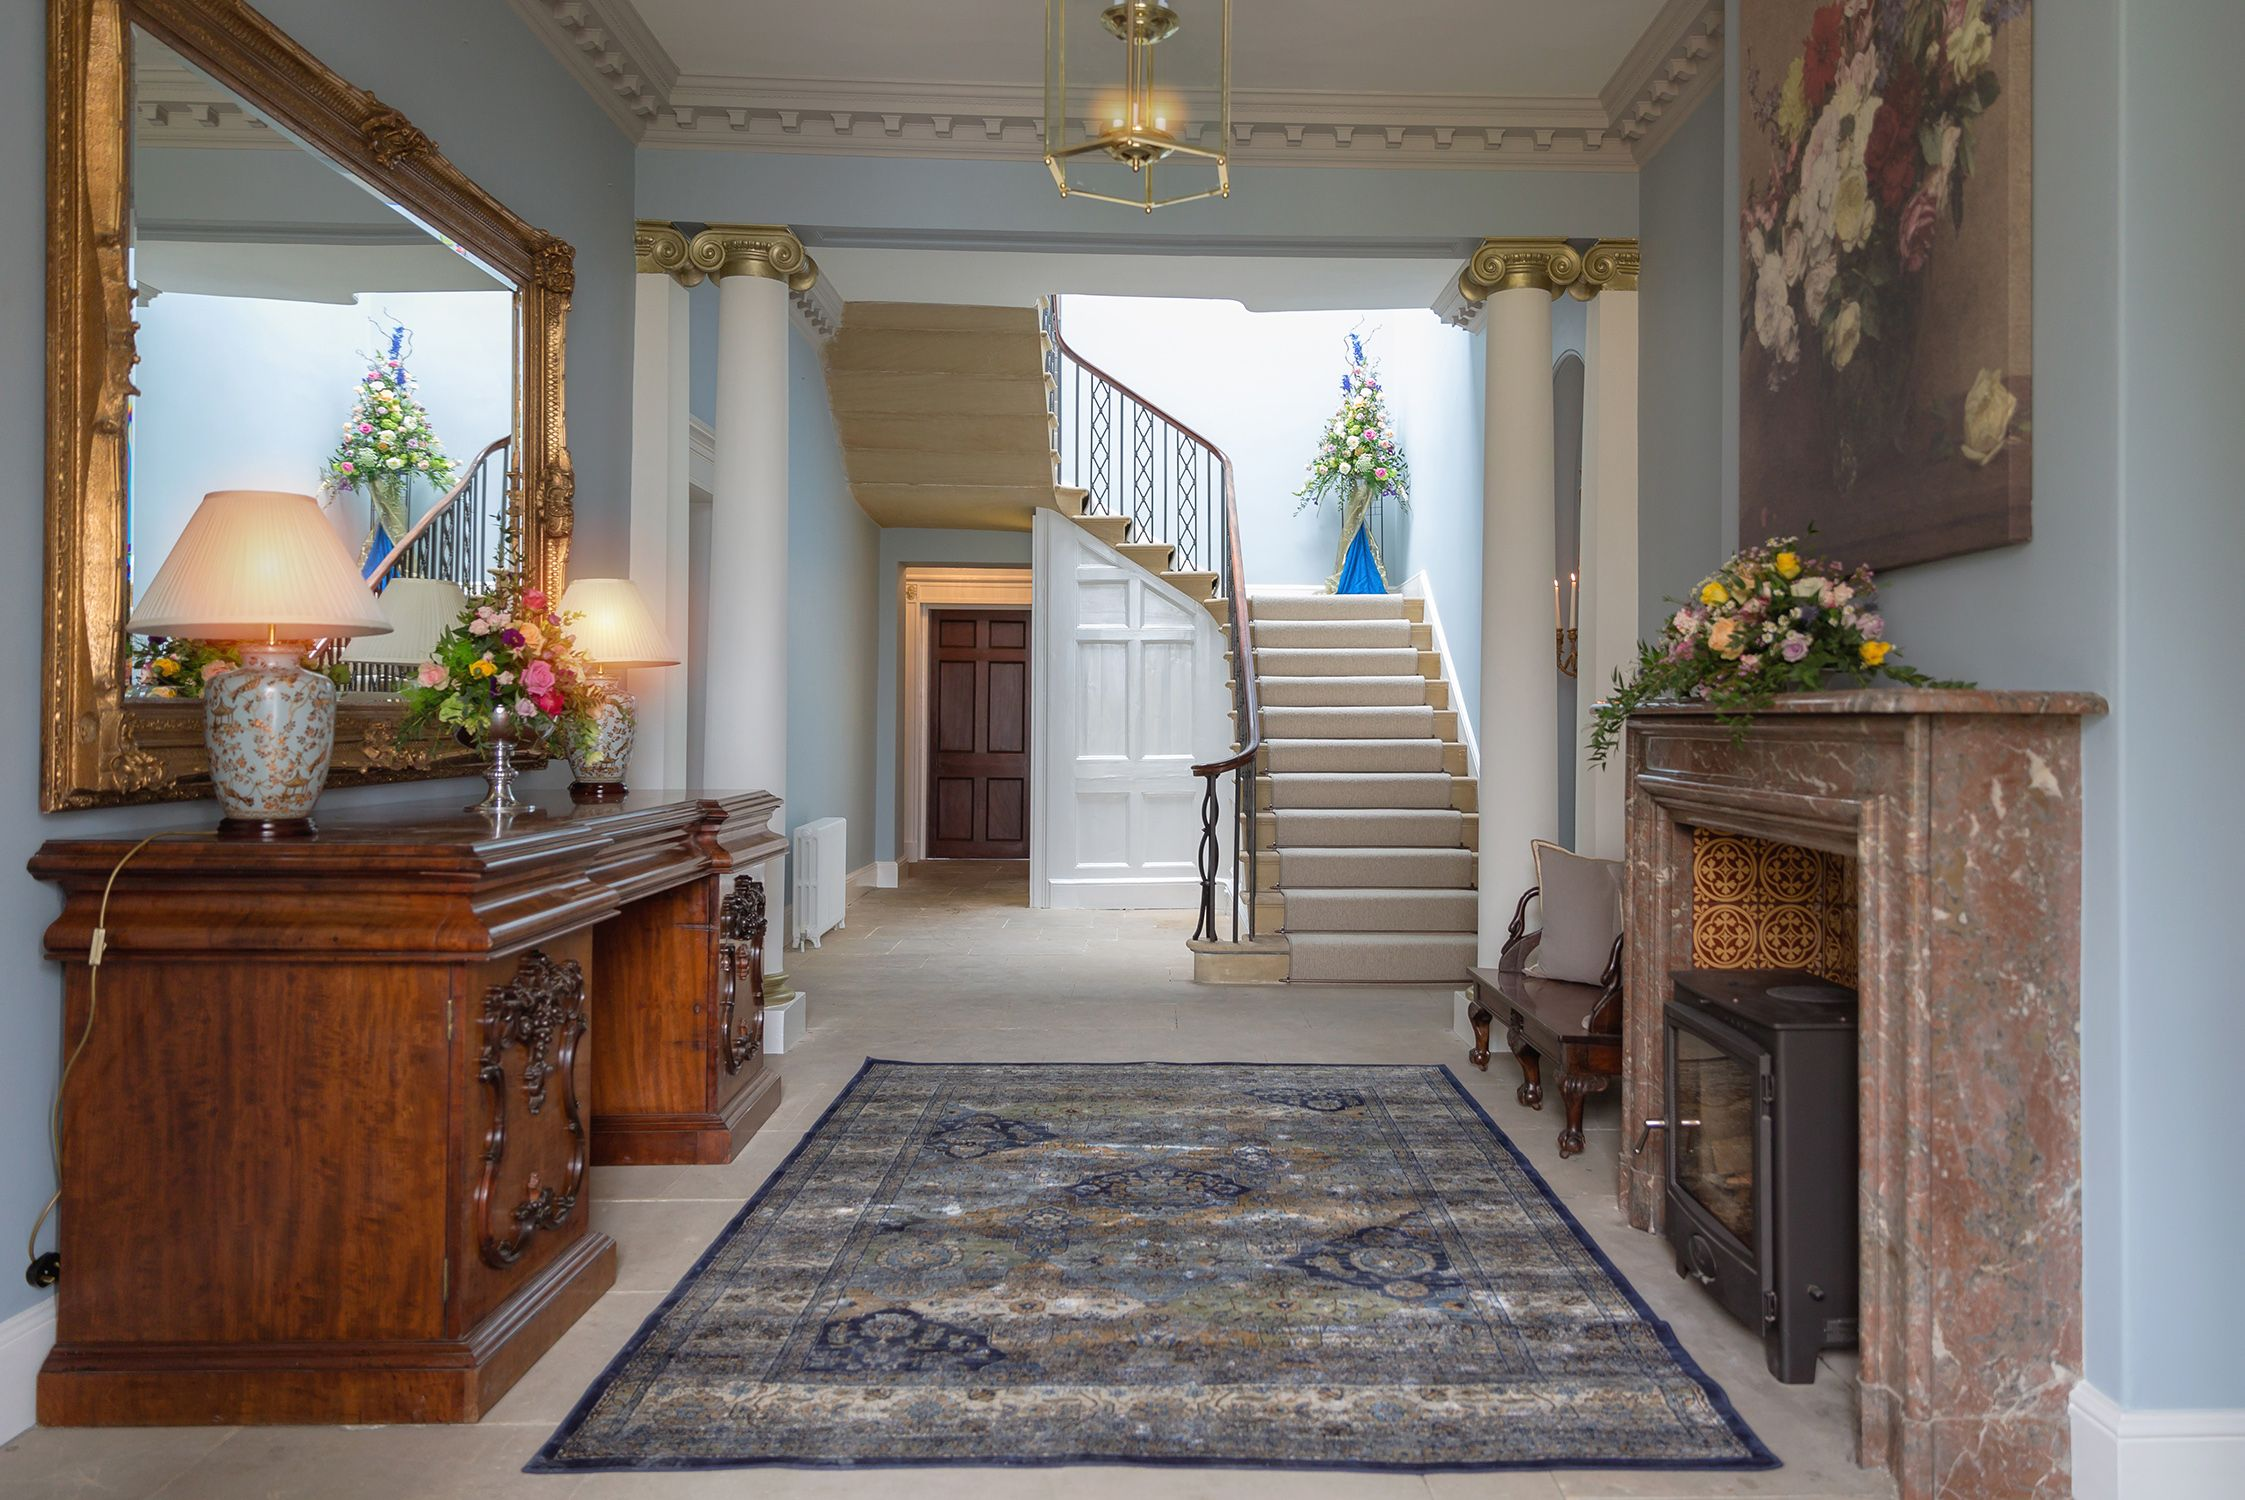 Garthmyl Hall Powys Wedding Venue Entrance Hall Garthmyl  # Muebles Sisal Queretaro